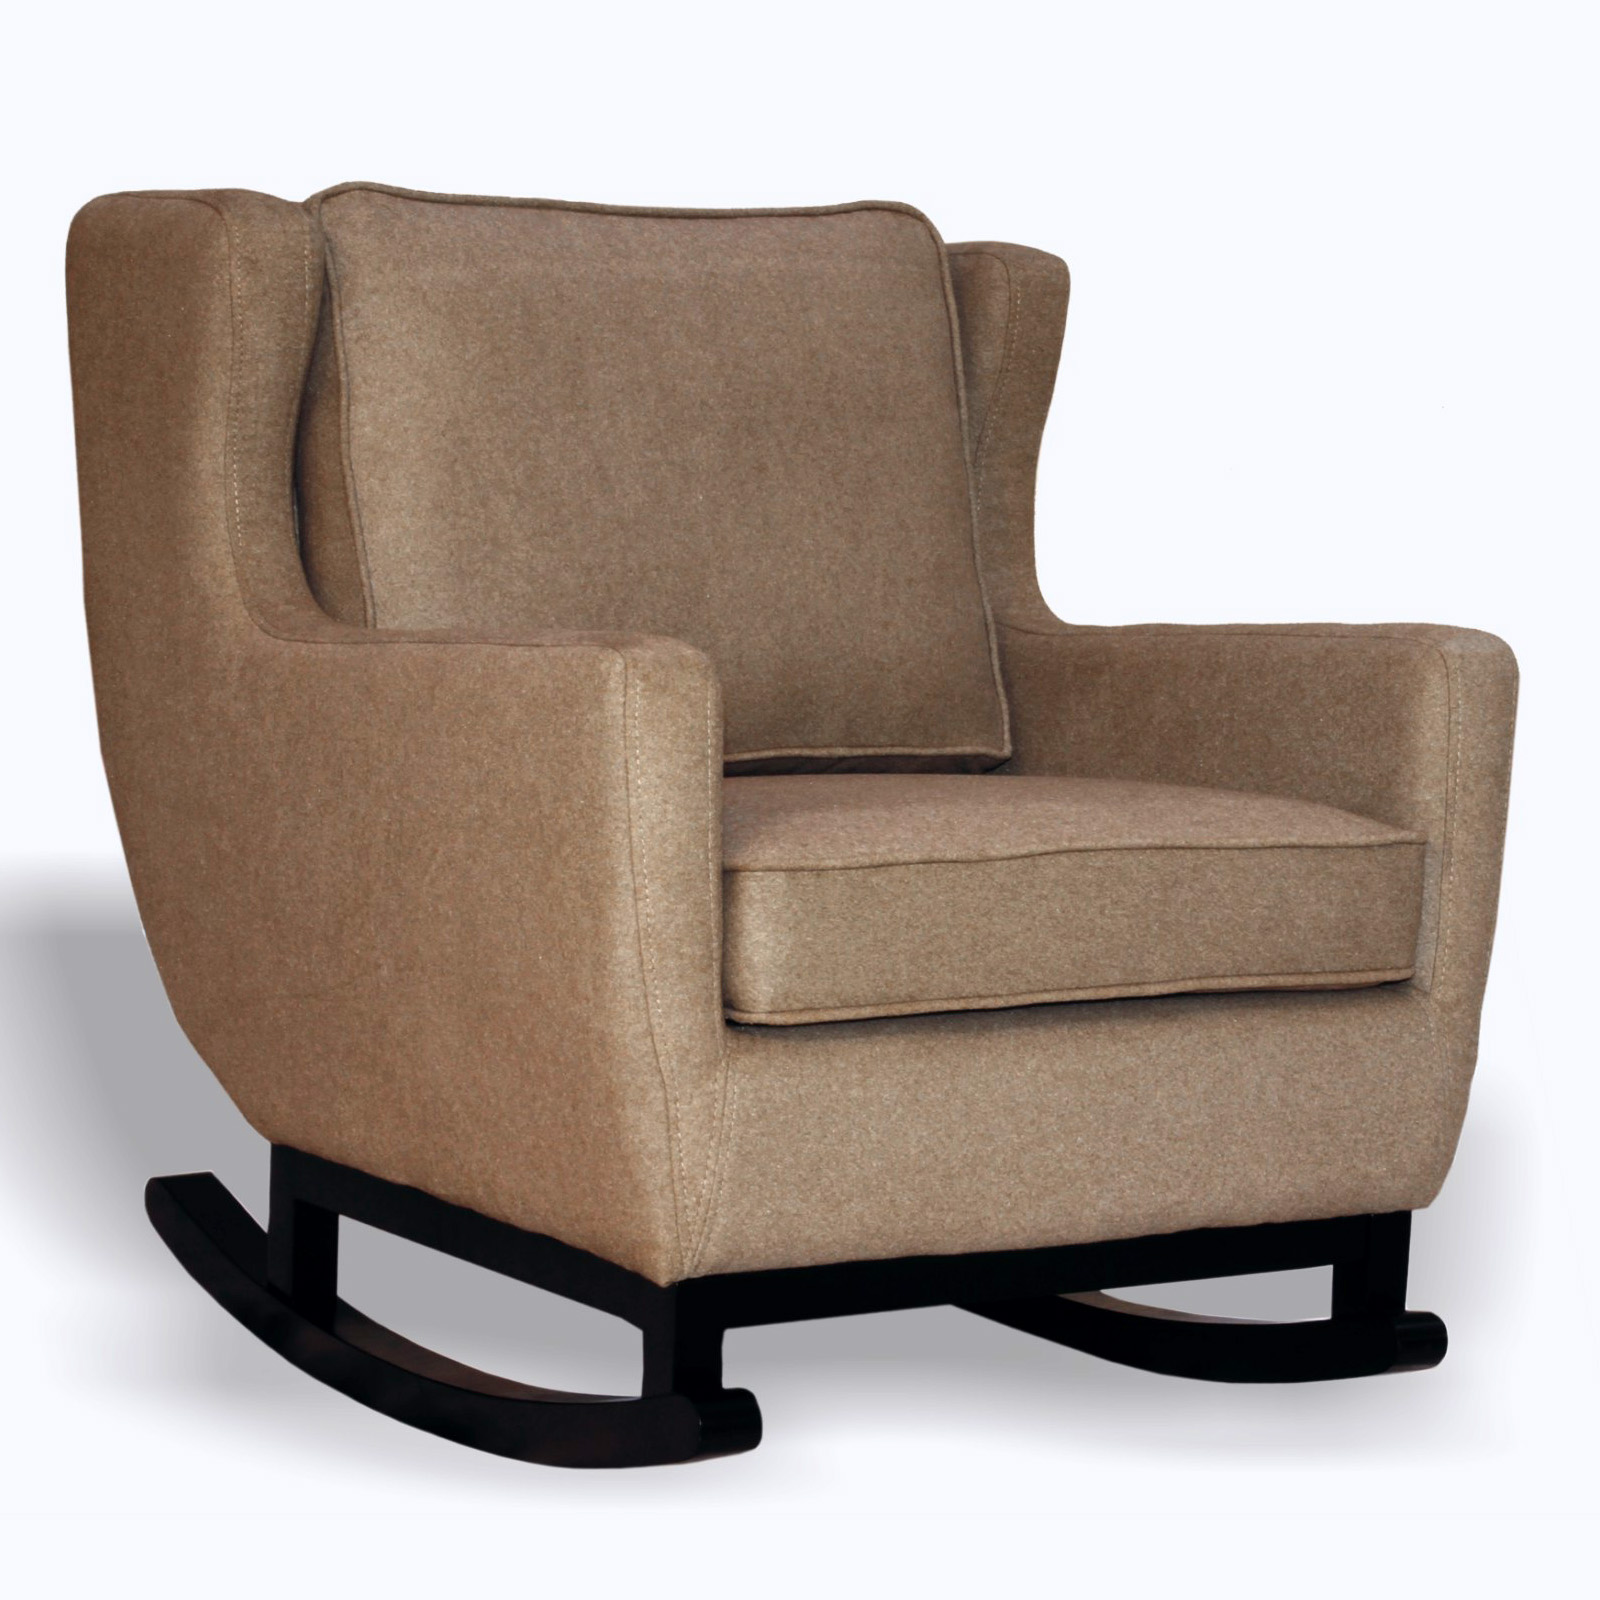 Belham Living Upholstered Rocking Chair  Espresso at